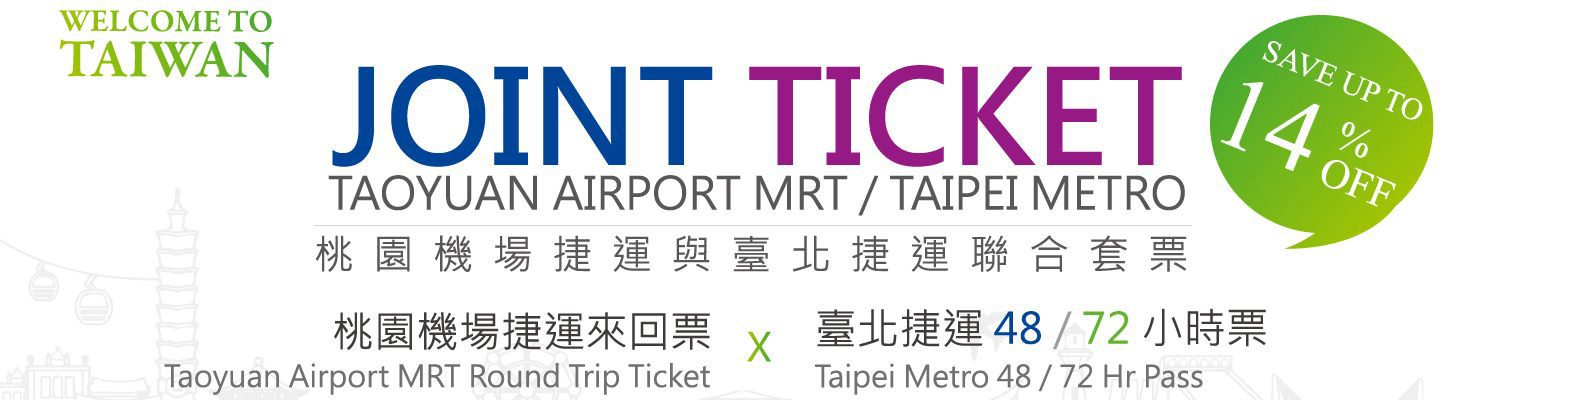 JOINT TICKET TAOYUAN AIRPORT MRT / TAIPEI METRO[Open in new window]